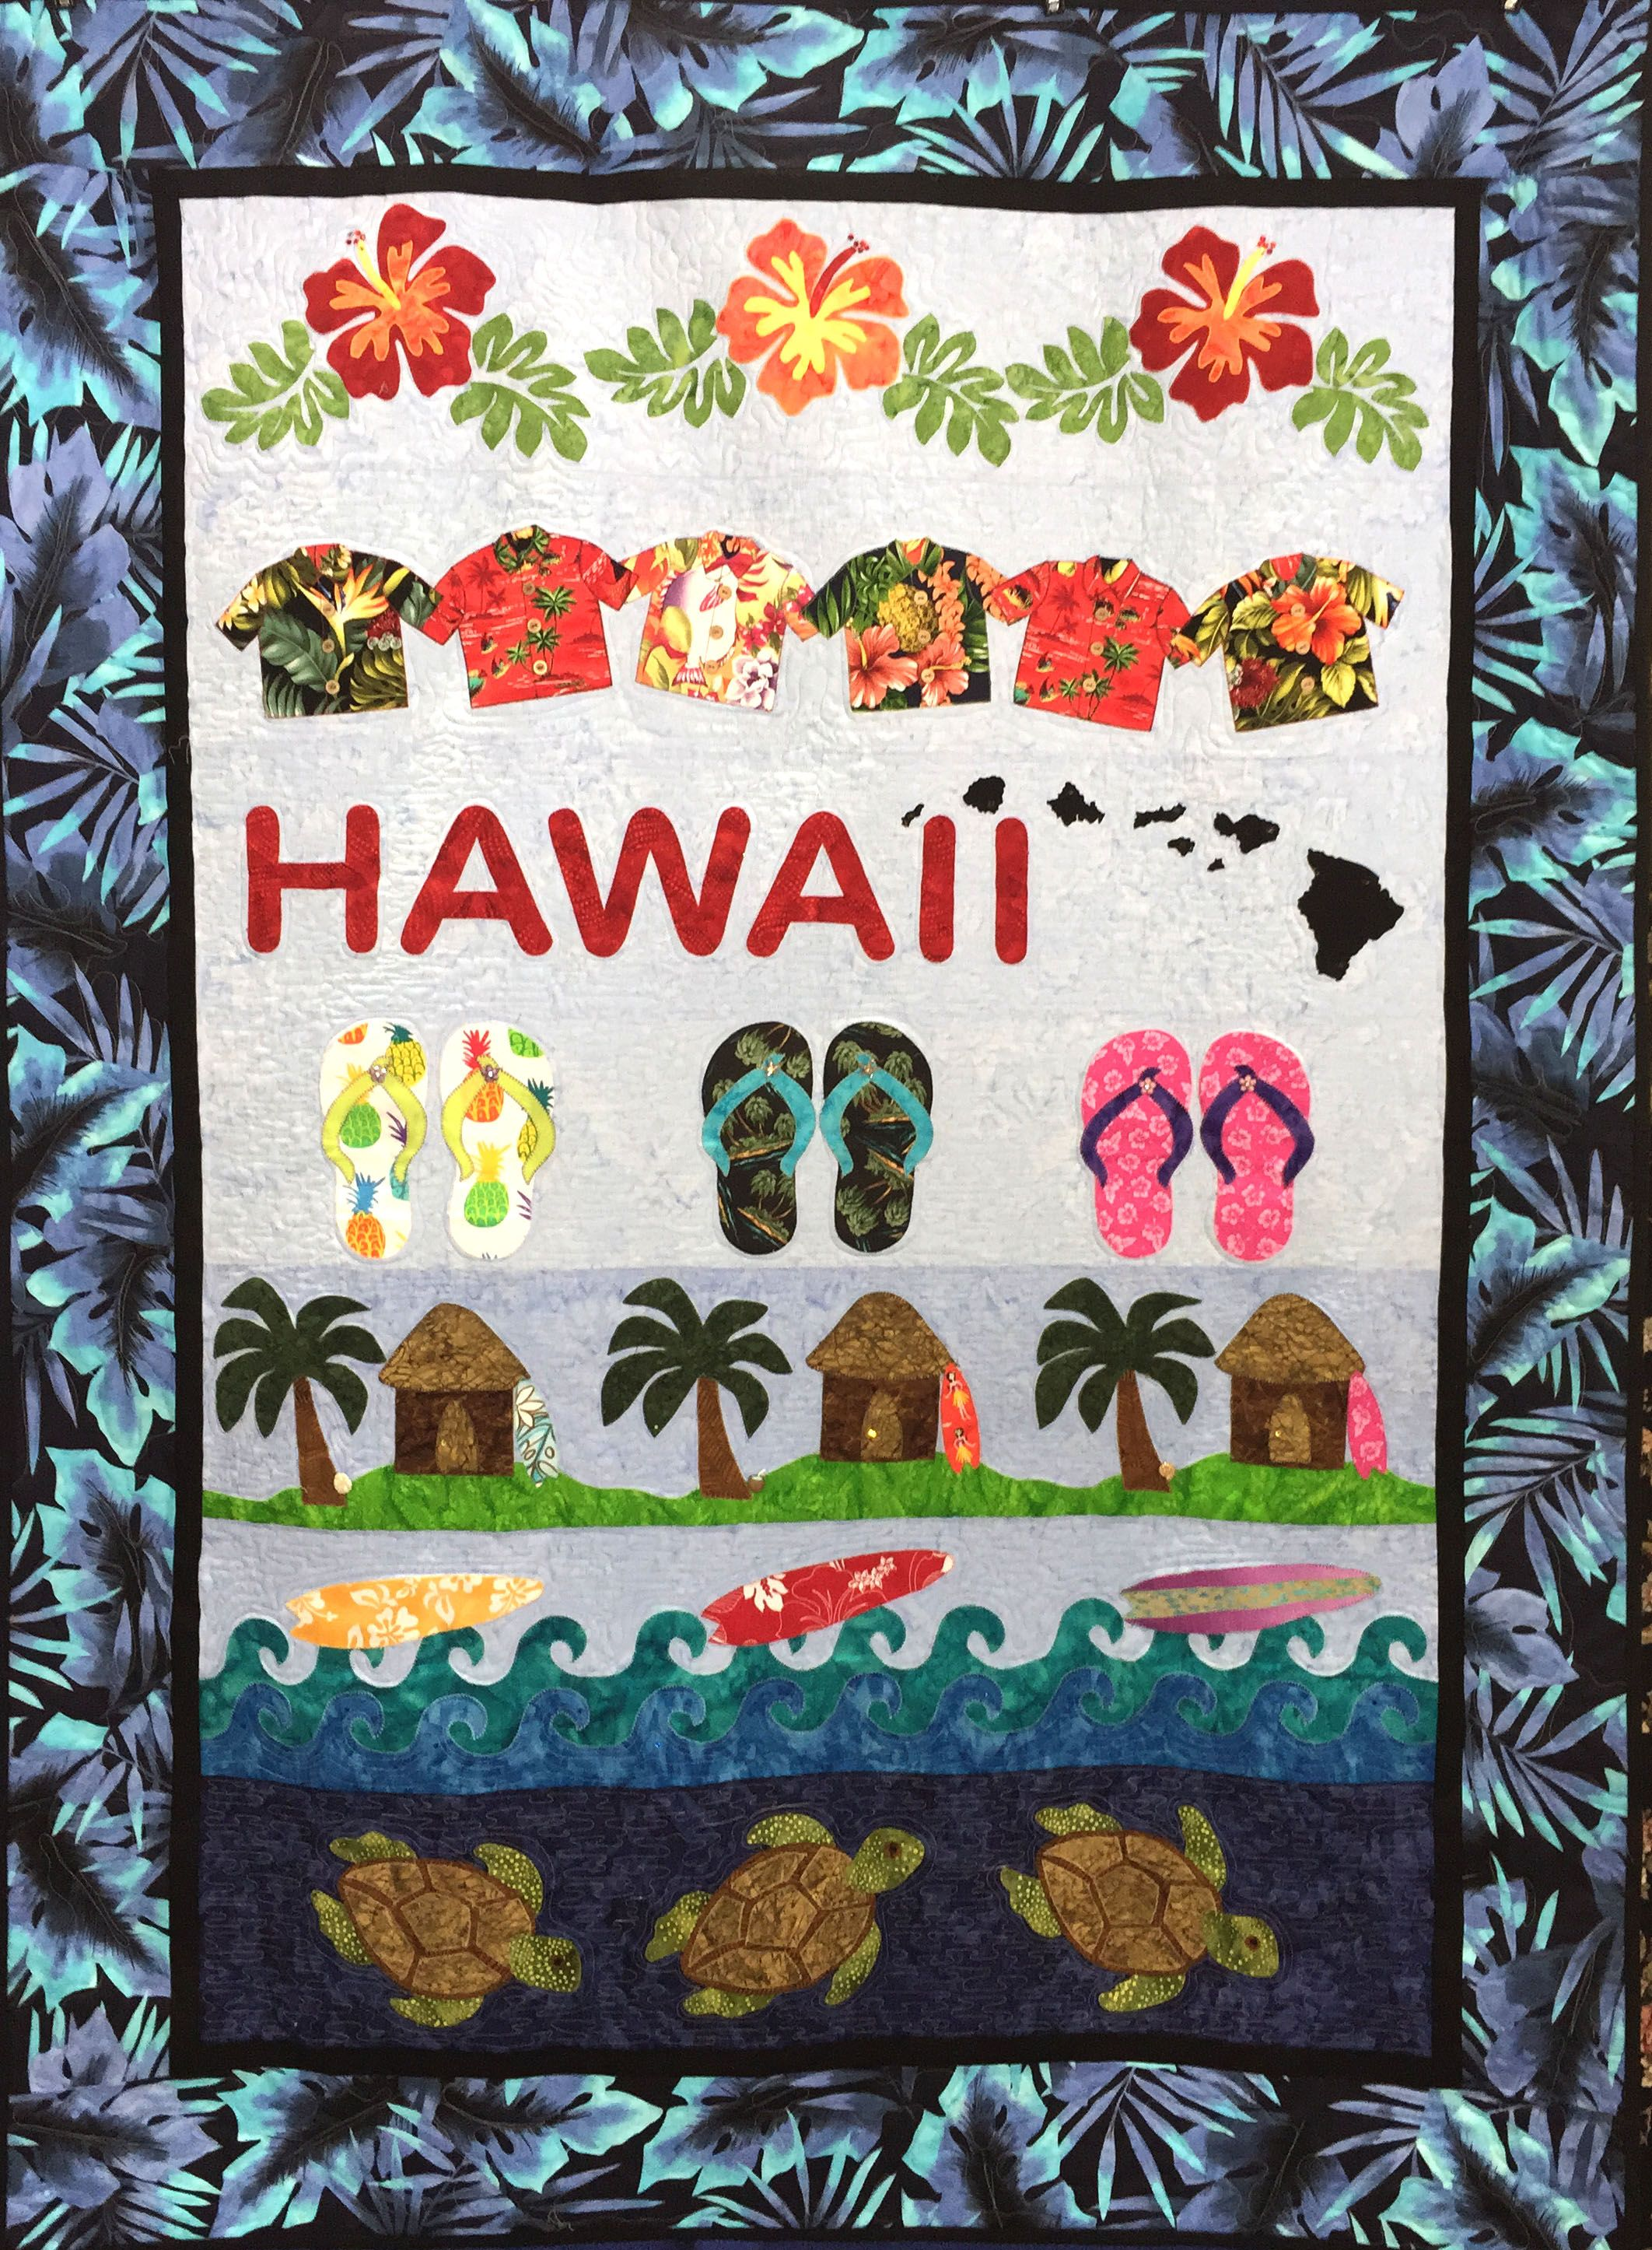 Hawaii Row by Row from Aloha Quilt Designs www.alohaquiltshop.com ...